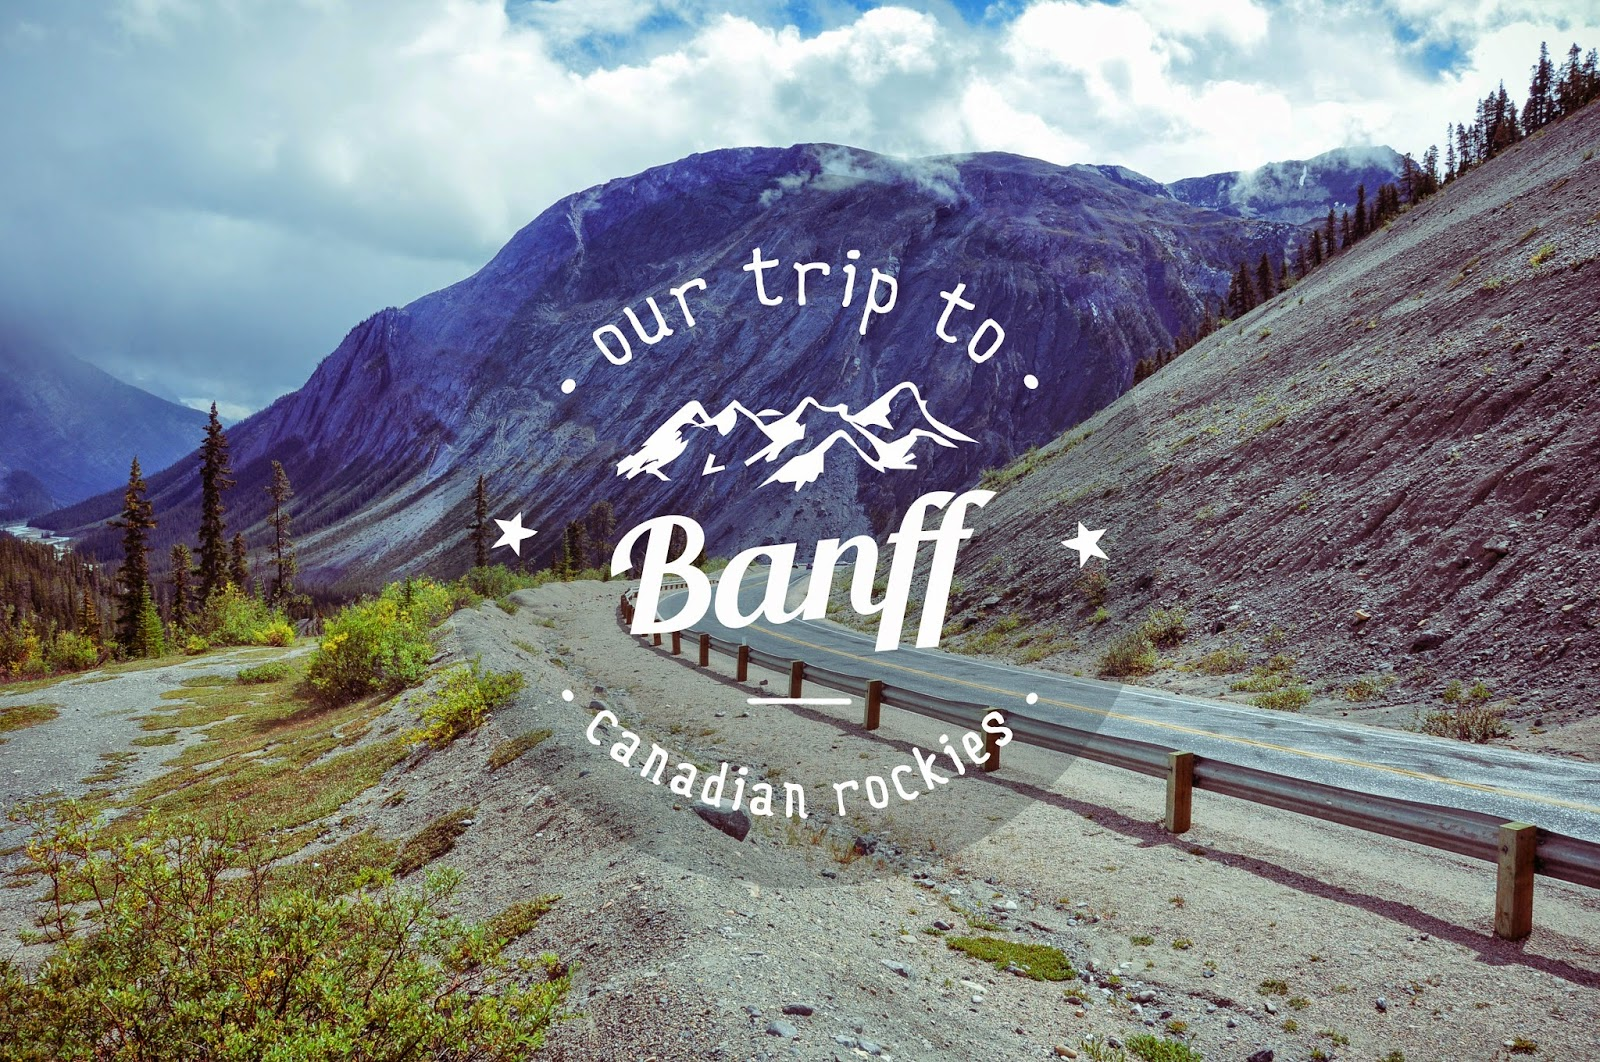 Road trip to Banff, Canadian Rockies